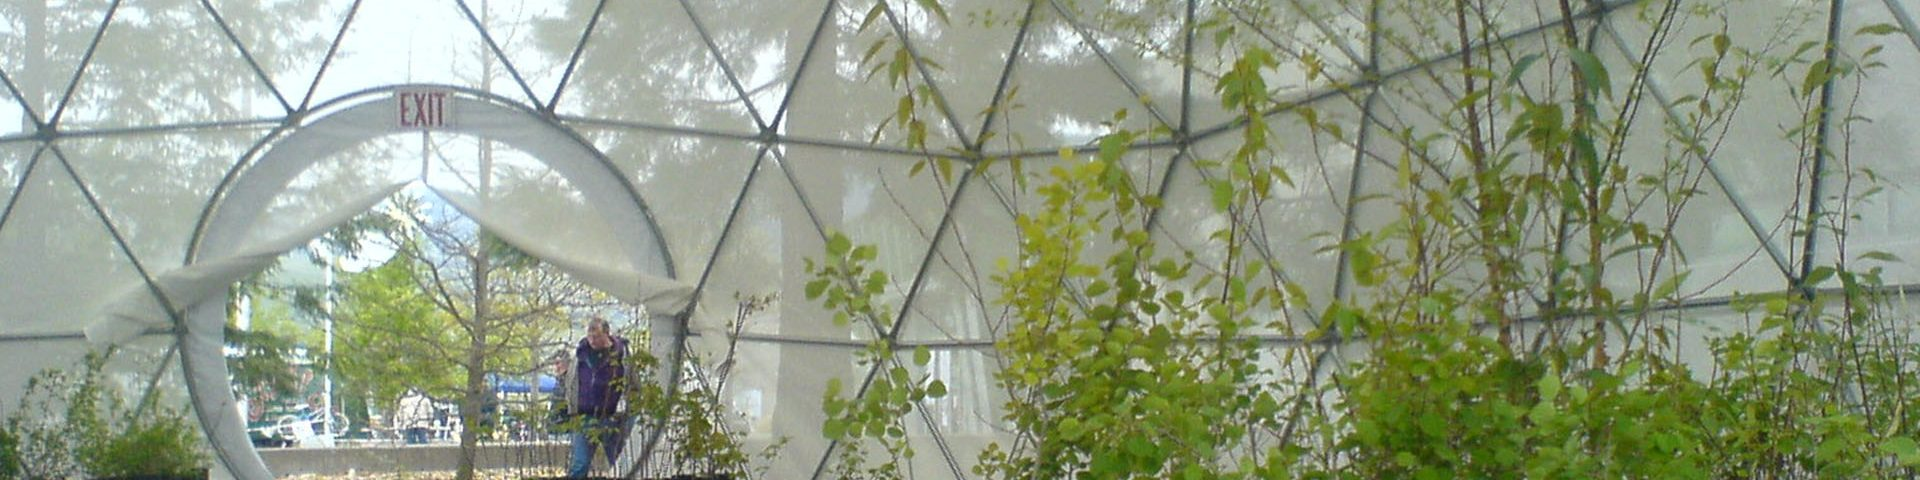 Best Geodesic Greenhouse Domes - Dome Greenhouse Kits for Sale